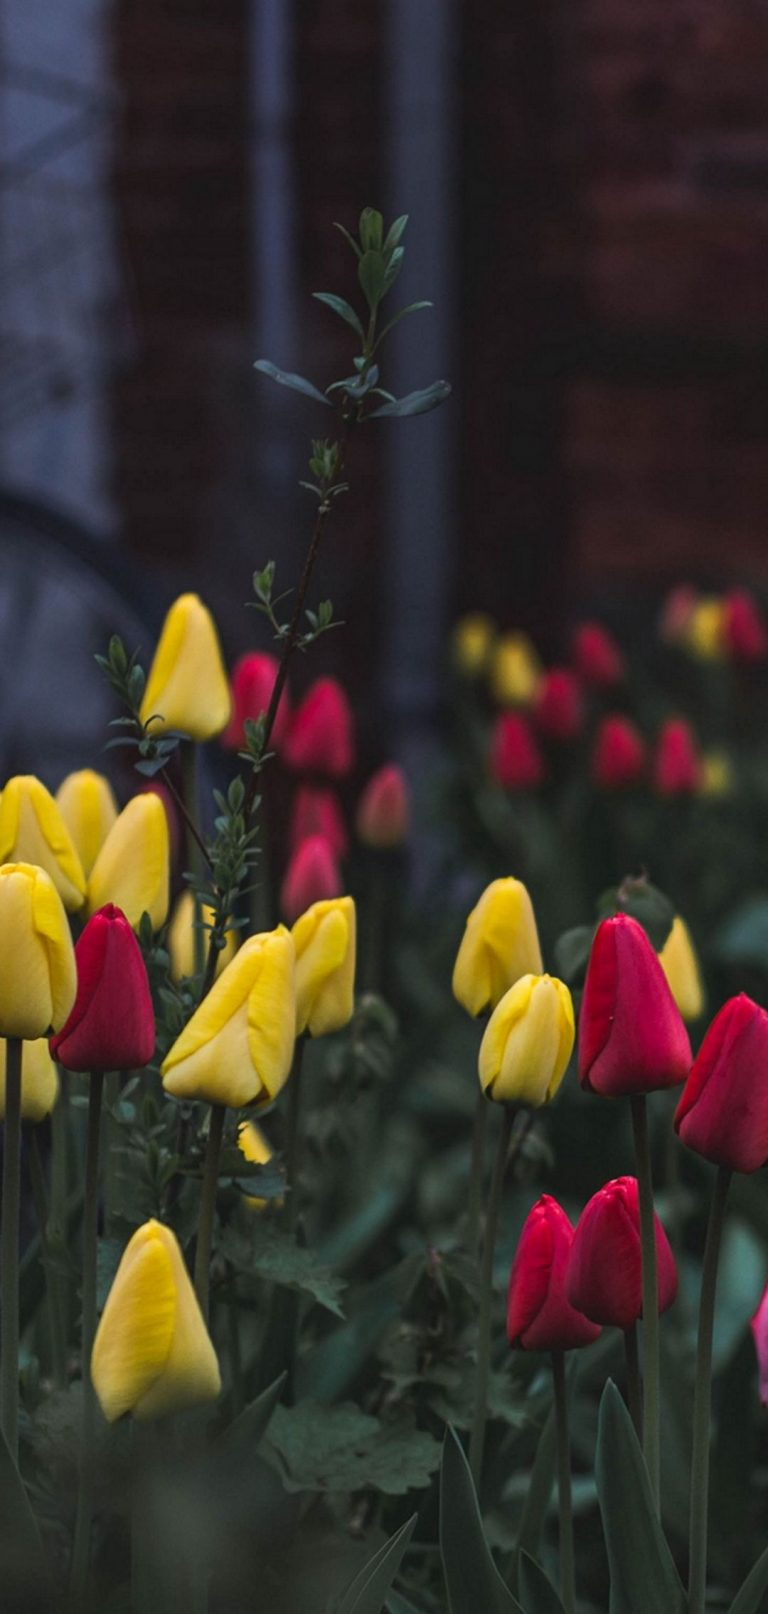 Tulips Flower Bed Flowers 1080x2270 768x1614